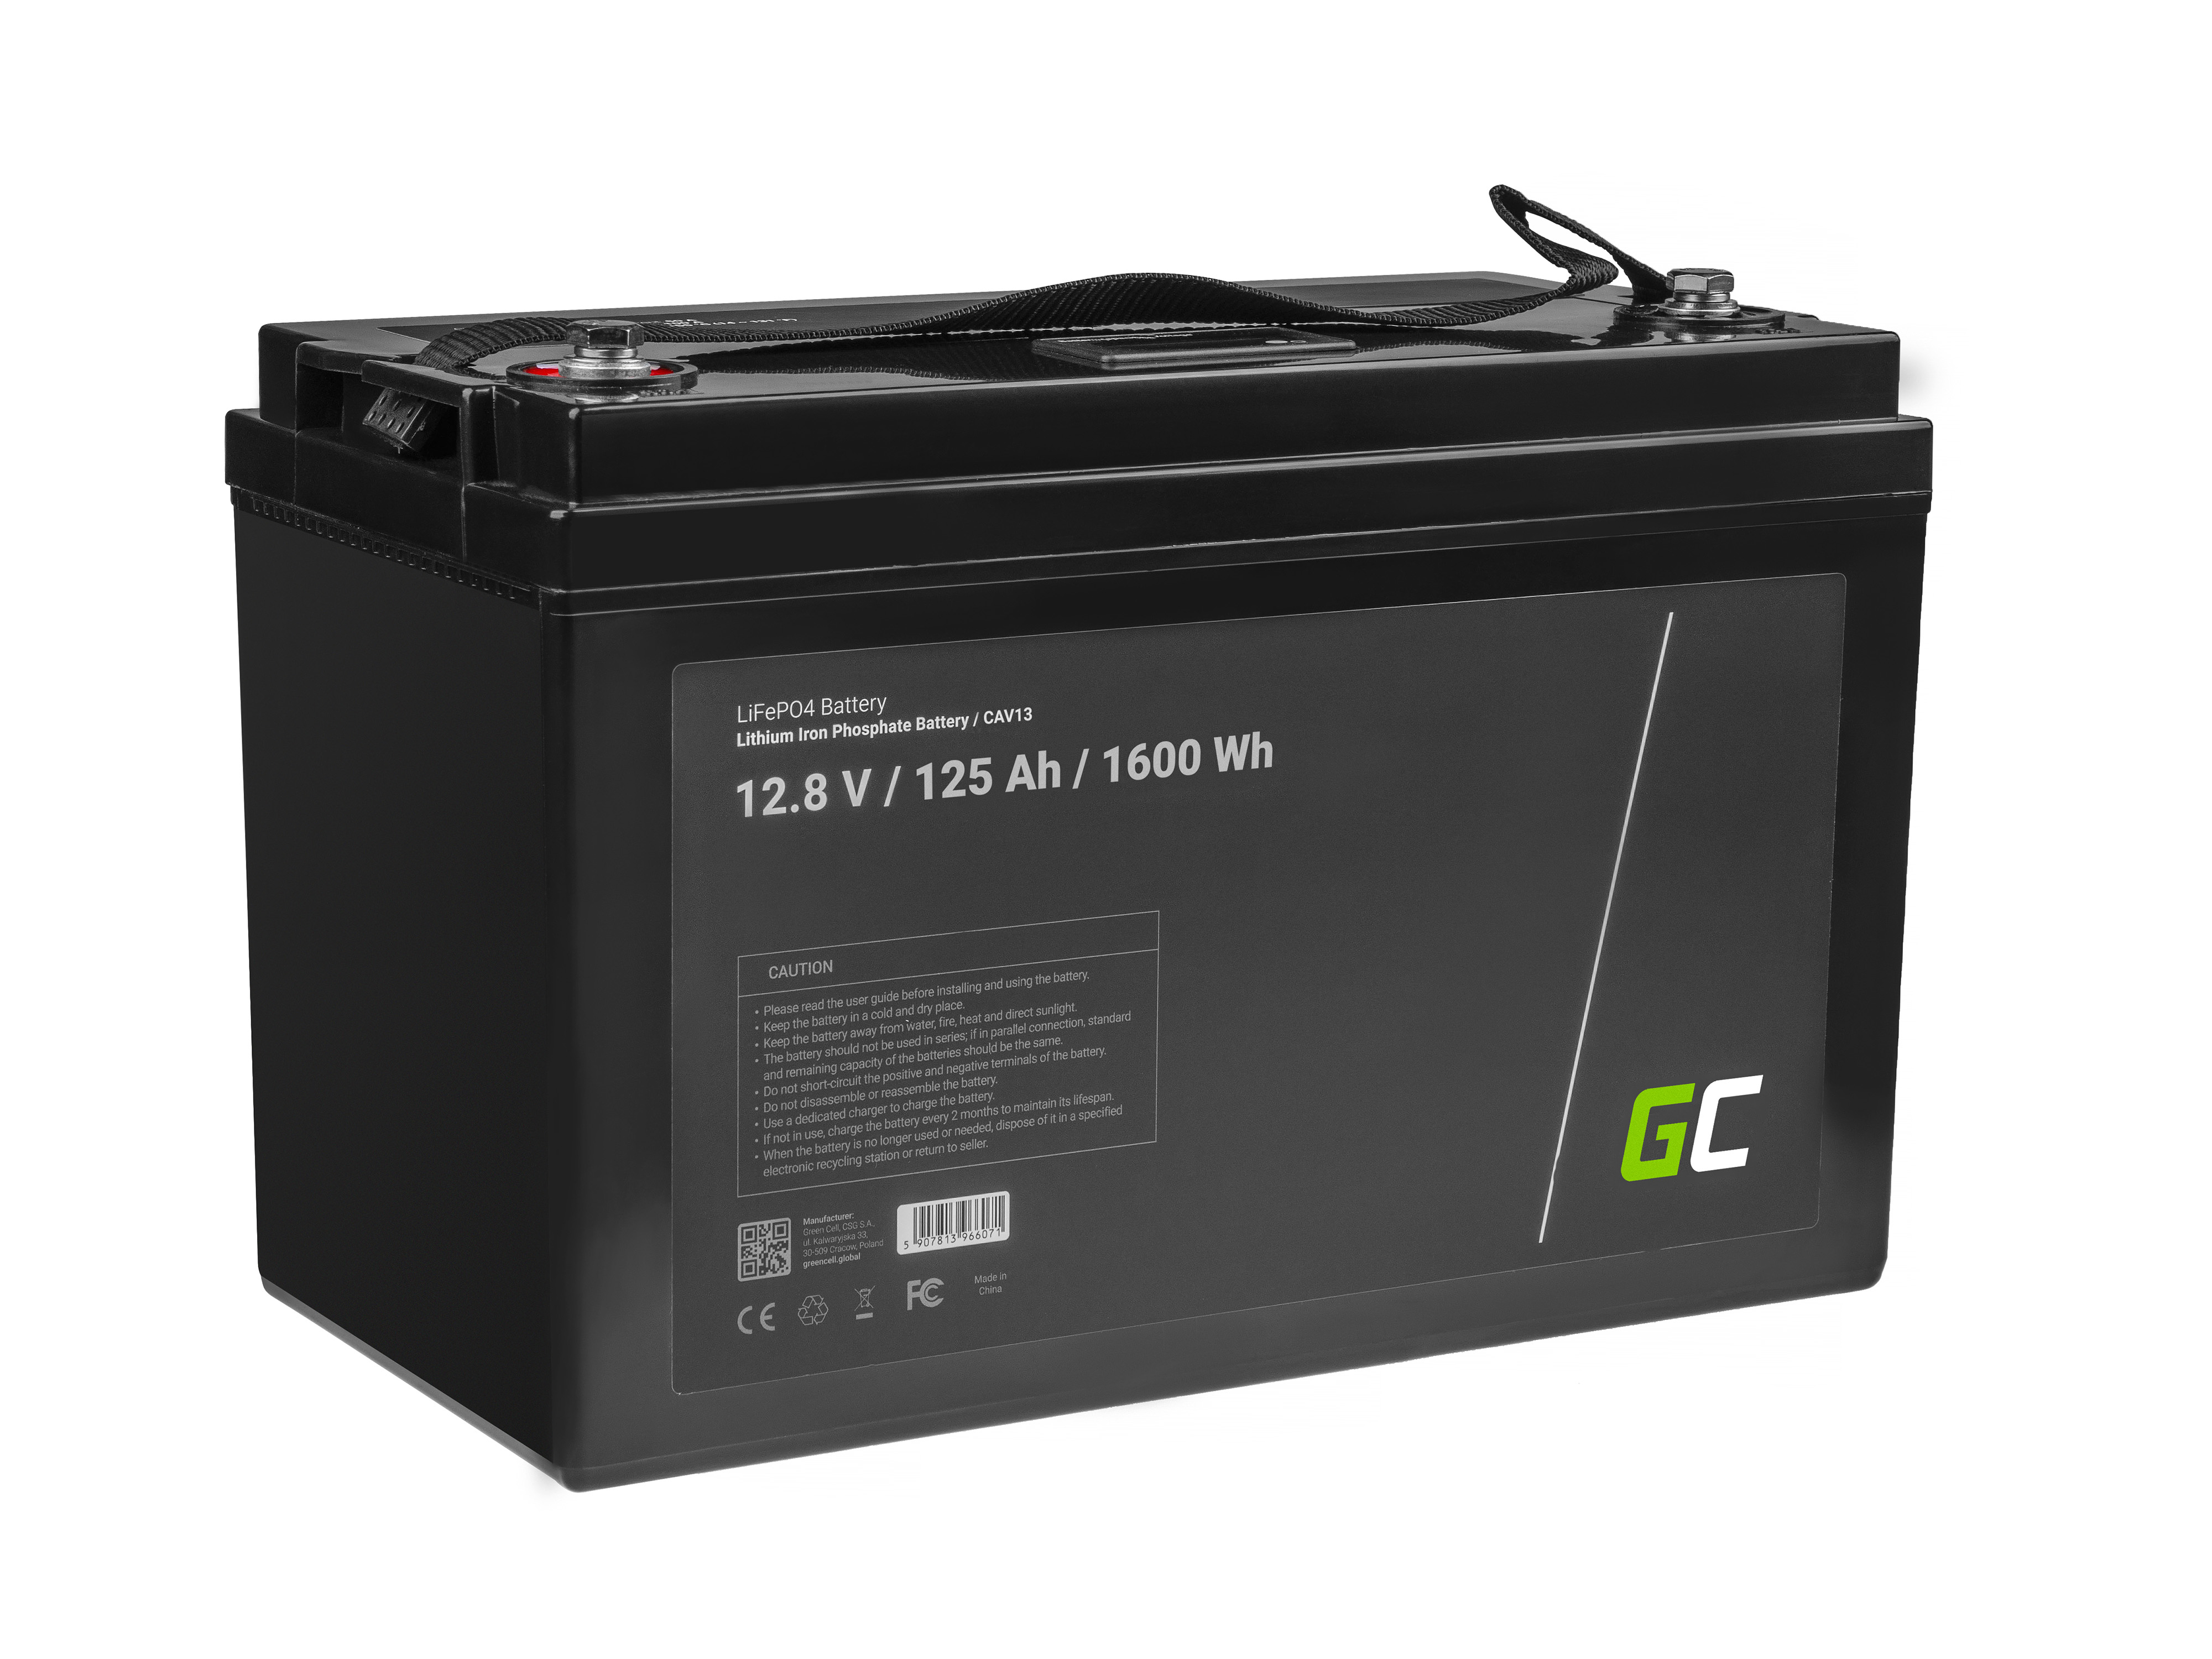 Battery Lithium-iron-phosphate LiFePO4 12V 12.8V 125Ah for photovoltaic system, campers and boats